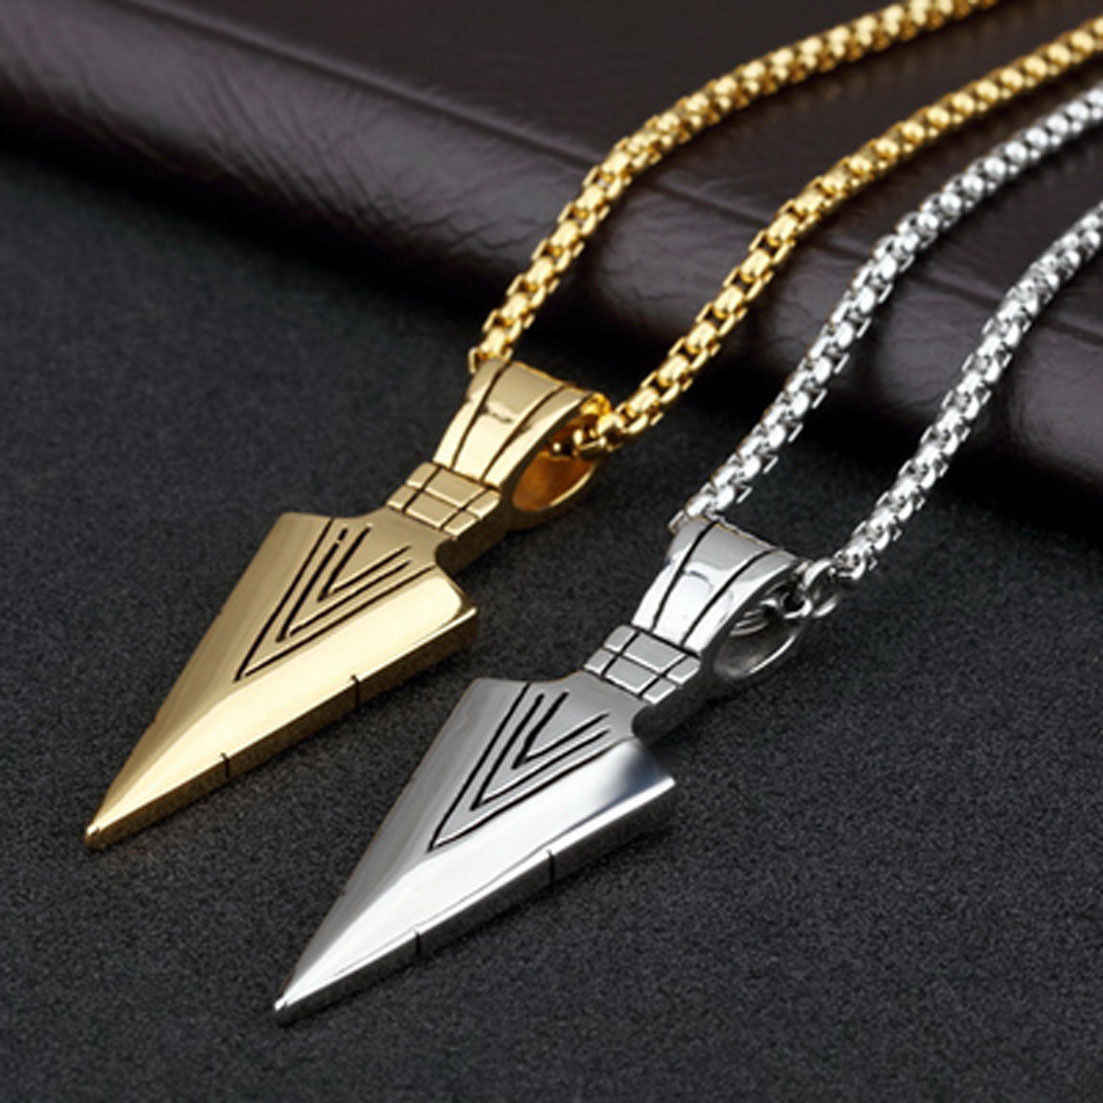 LISTE&LUKE 2019 Fashion 3colors Vintage Necklace Men Arrow Pendant Simple Chain Bead Arrow Long Men Necklaces Jewelry Gift